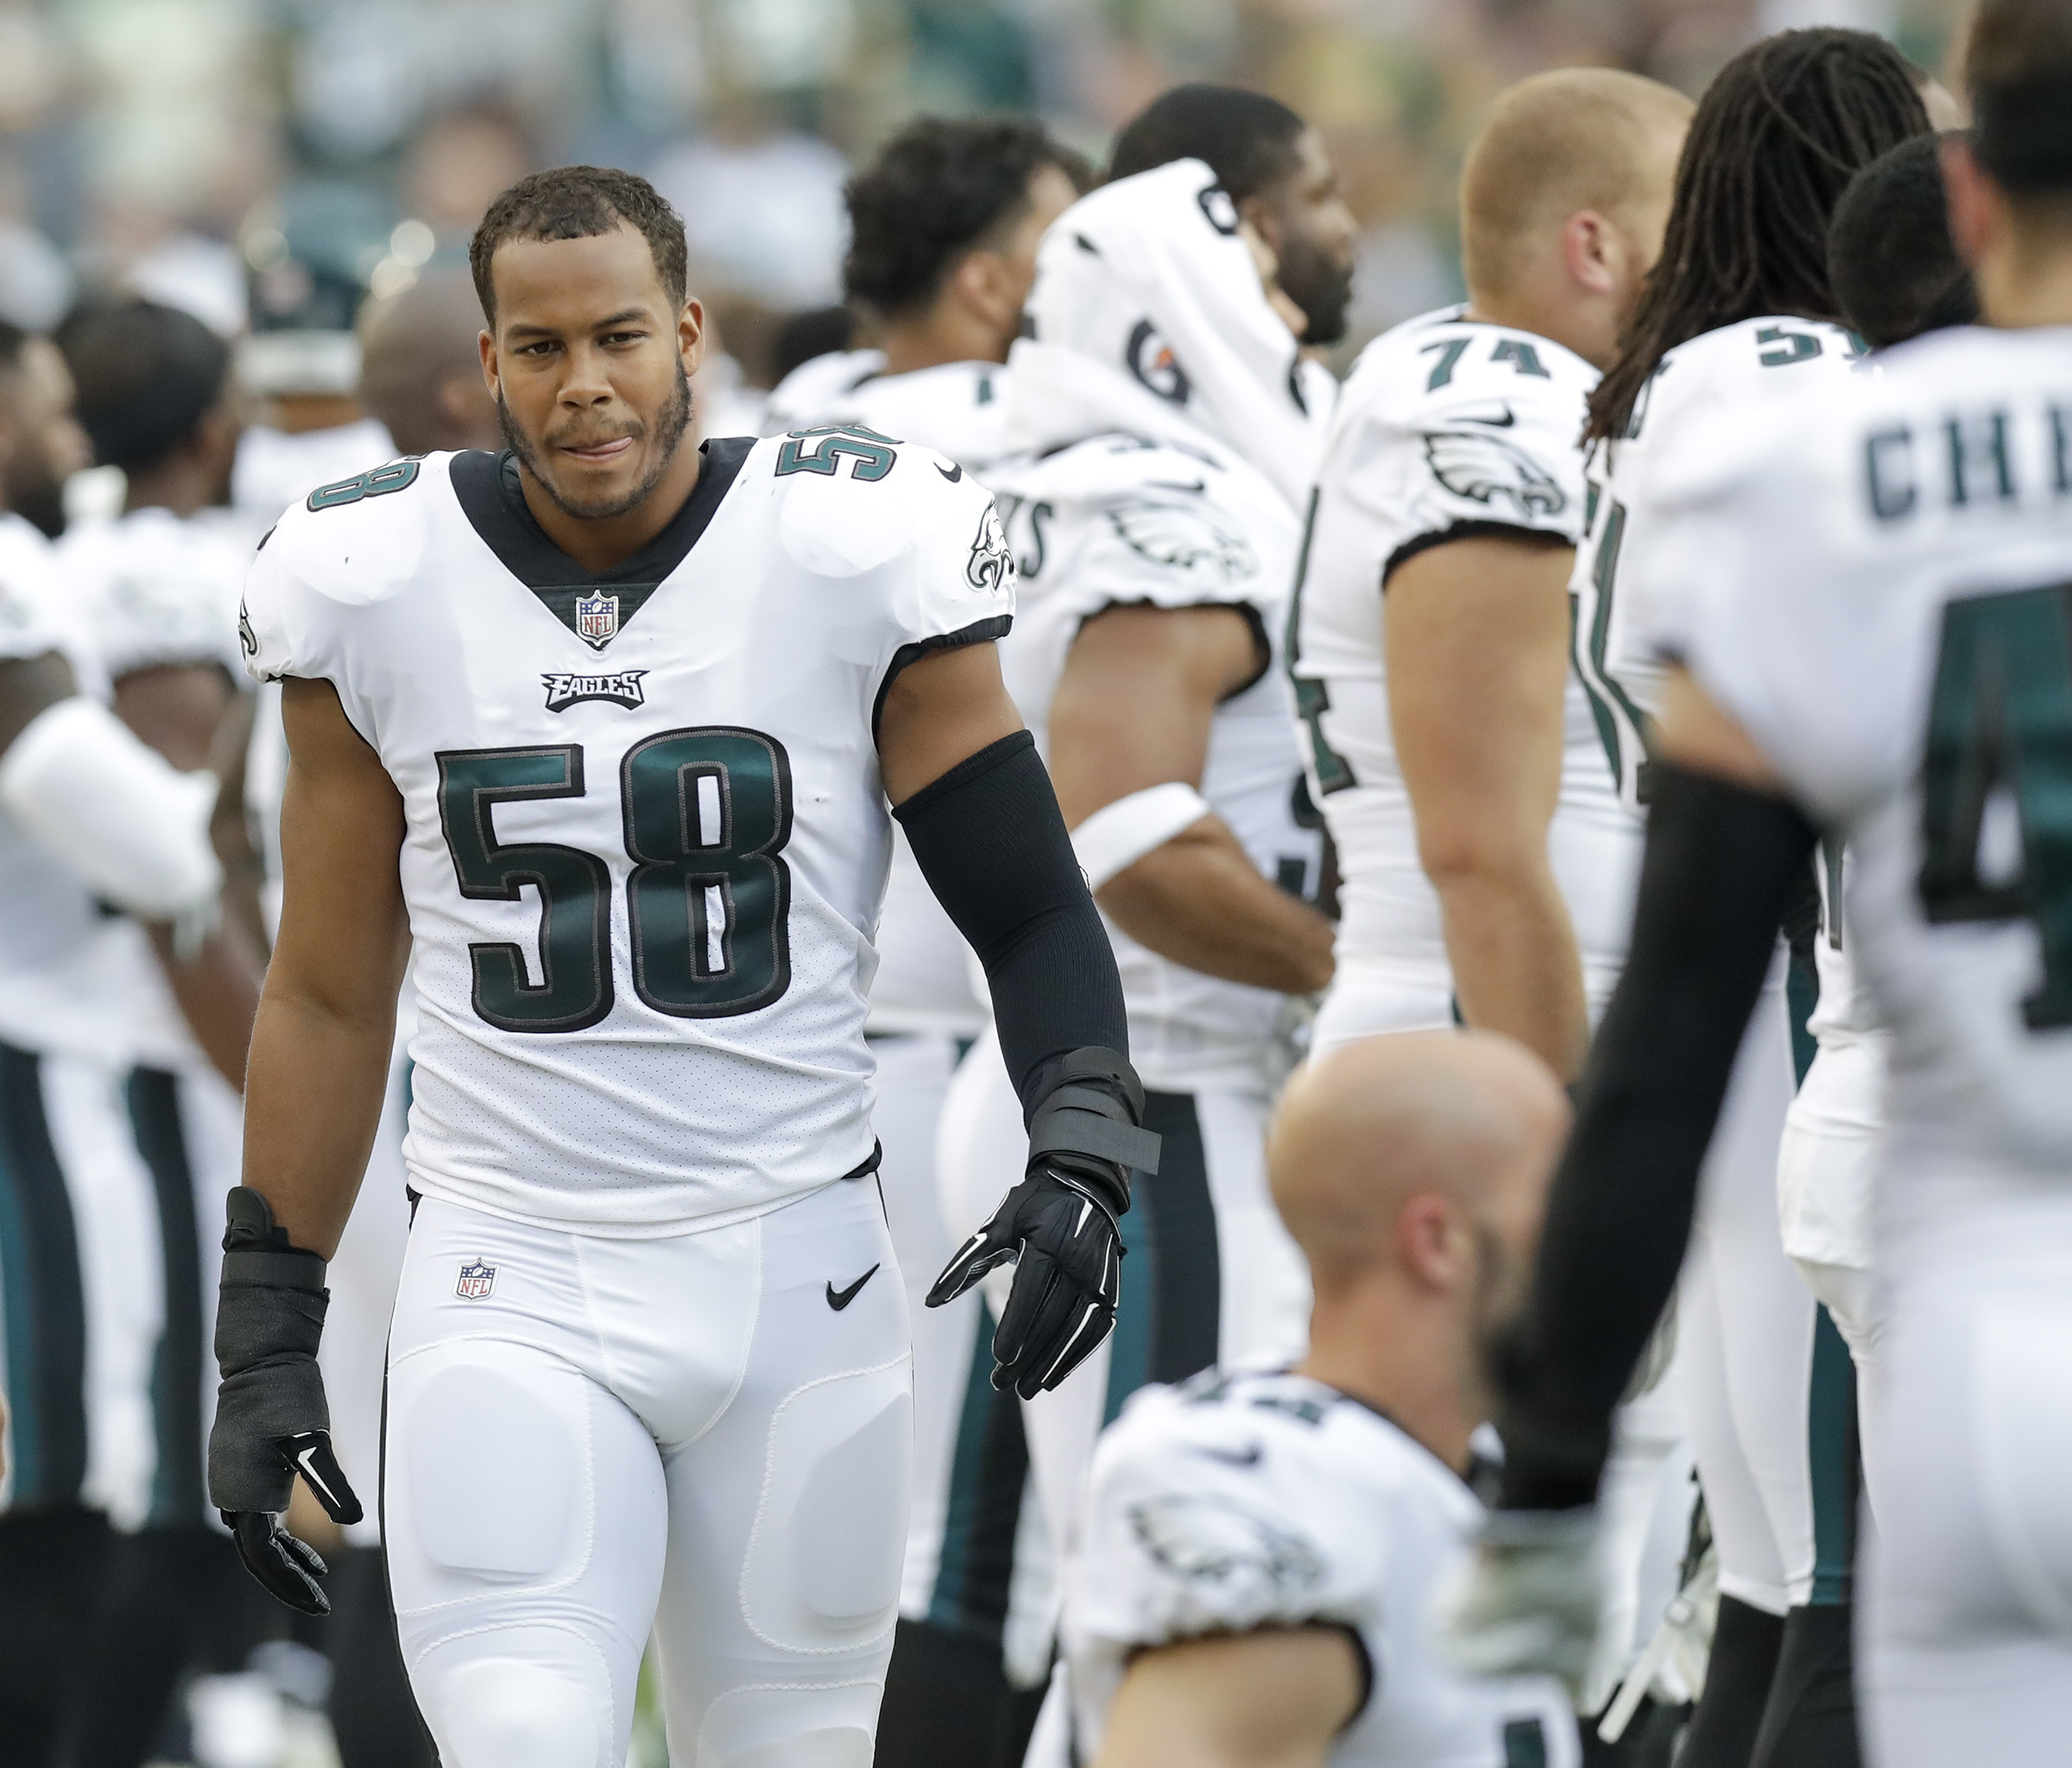 Eagles´ middle linebacker Jordan Hicks walking the Eagles sidelines against the Green Bay Packers in a preseason game at Lambeau Field in Green Bay WI on Thursday, August 10, 2017.